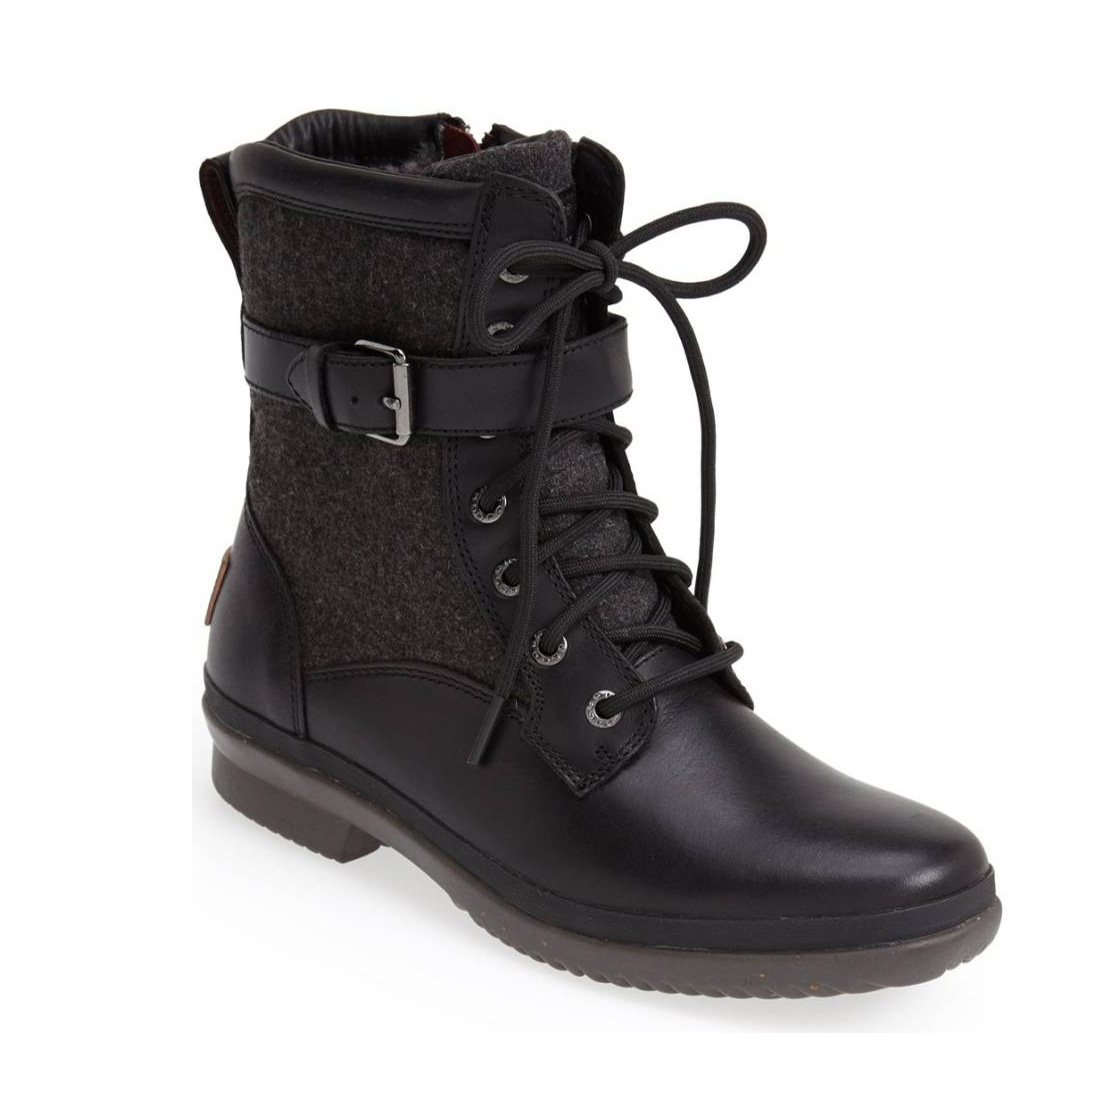 To acquire Stylish cute winter boots pictures trends